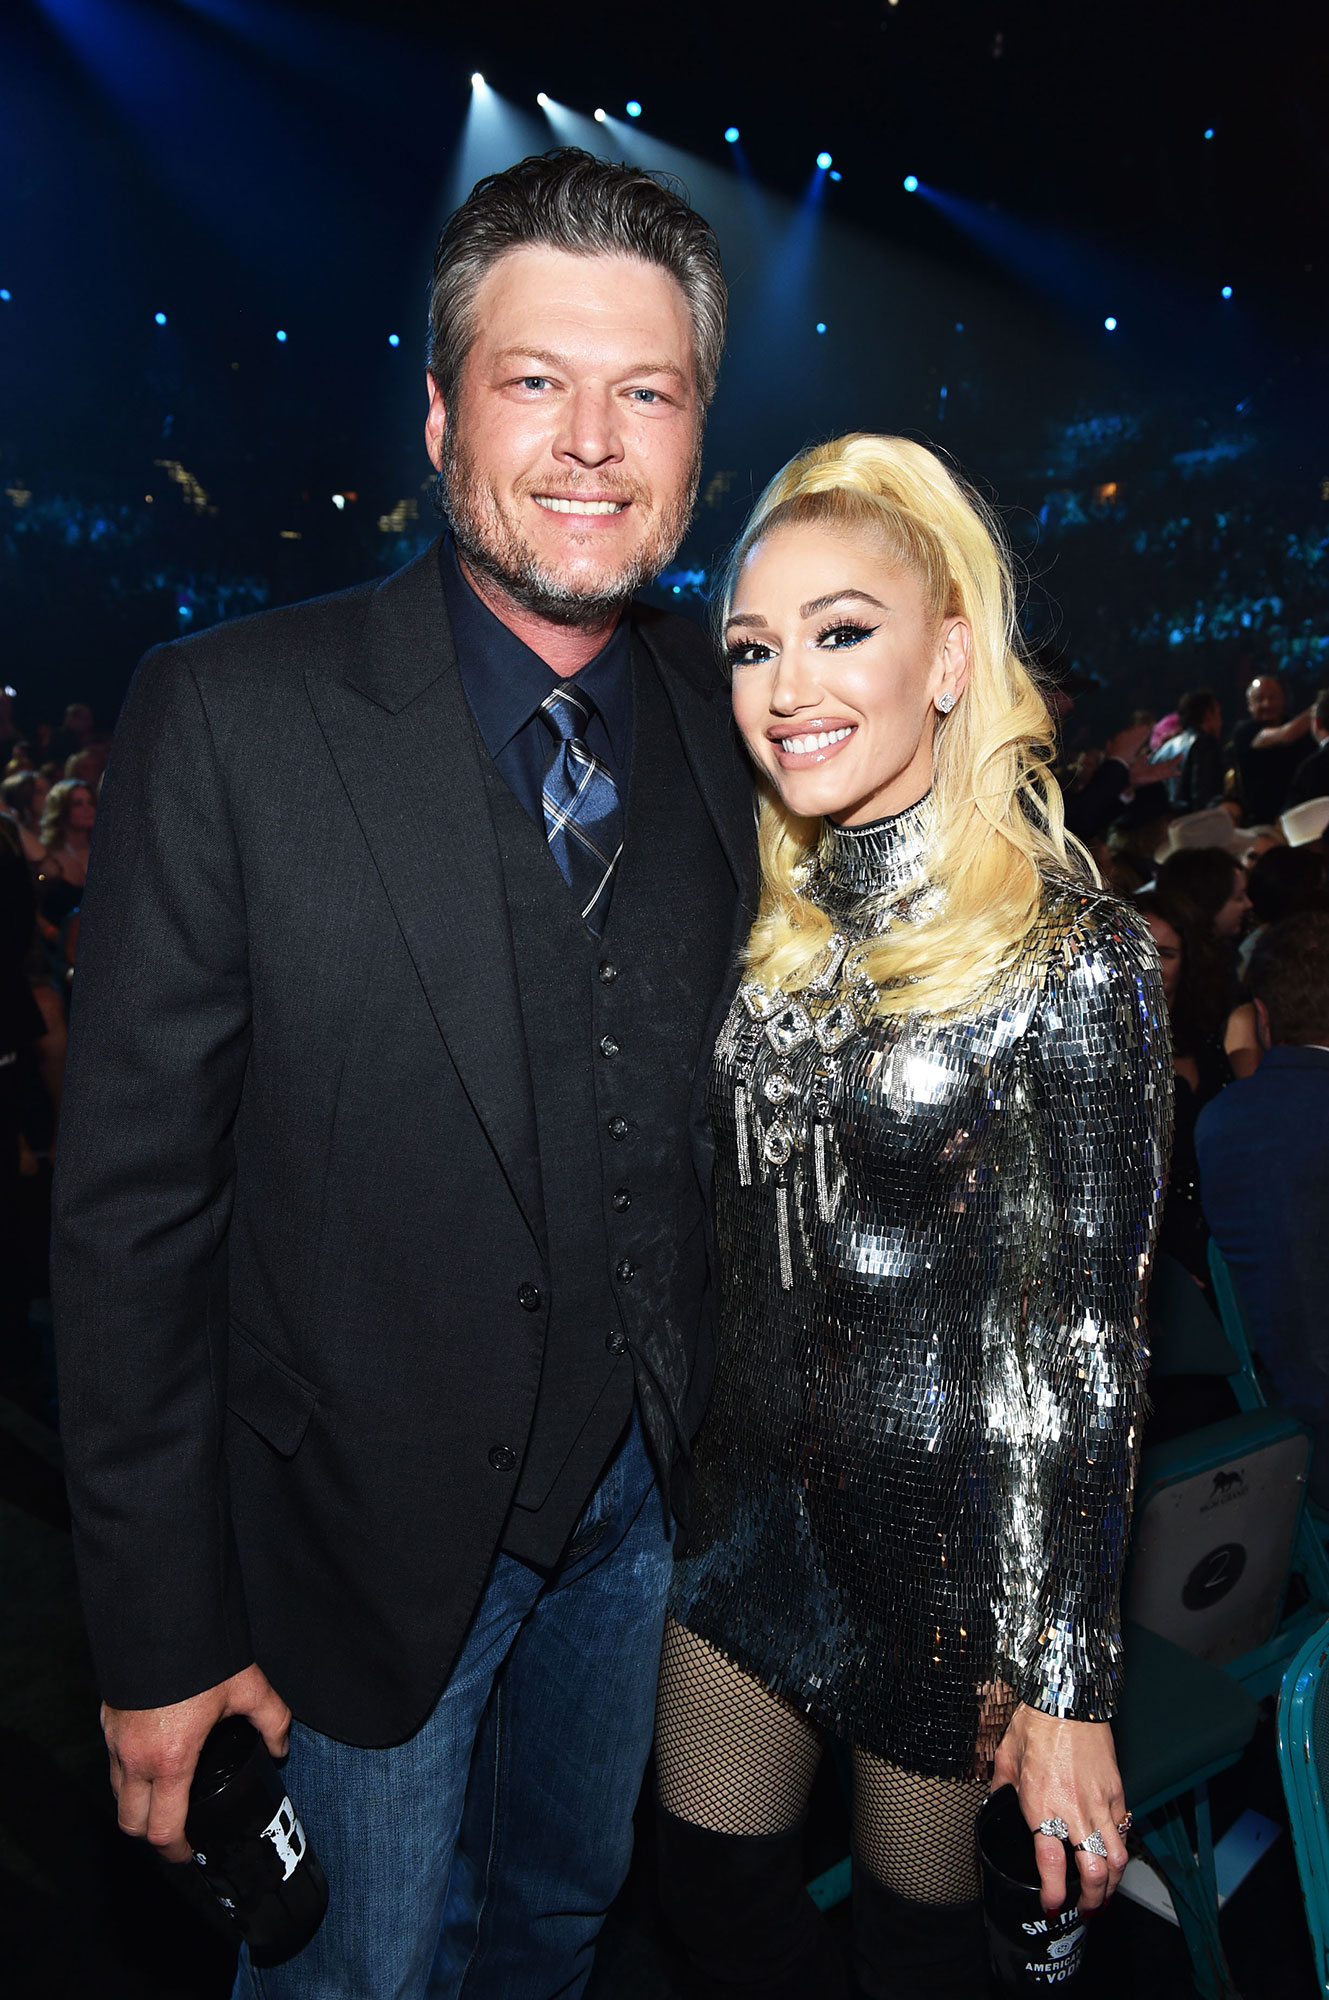 Blake Shelton and Gwen Stefani Smoking Hot Couples Style at the ACMs - While the lovebirds didn't walk the red carpet, they did pose inside. Shelton dressed up his jeans with a suit, vest and tie, while Stefani sparkled in a silver mini.